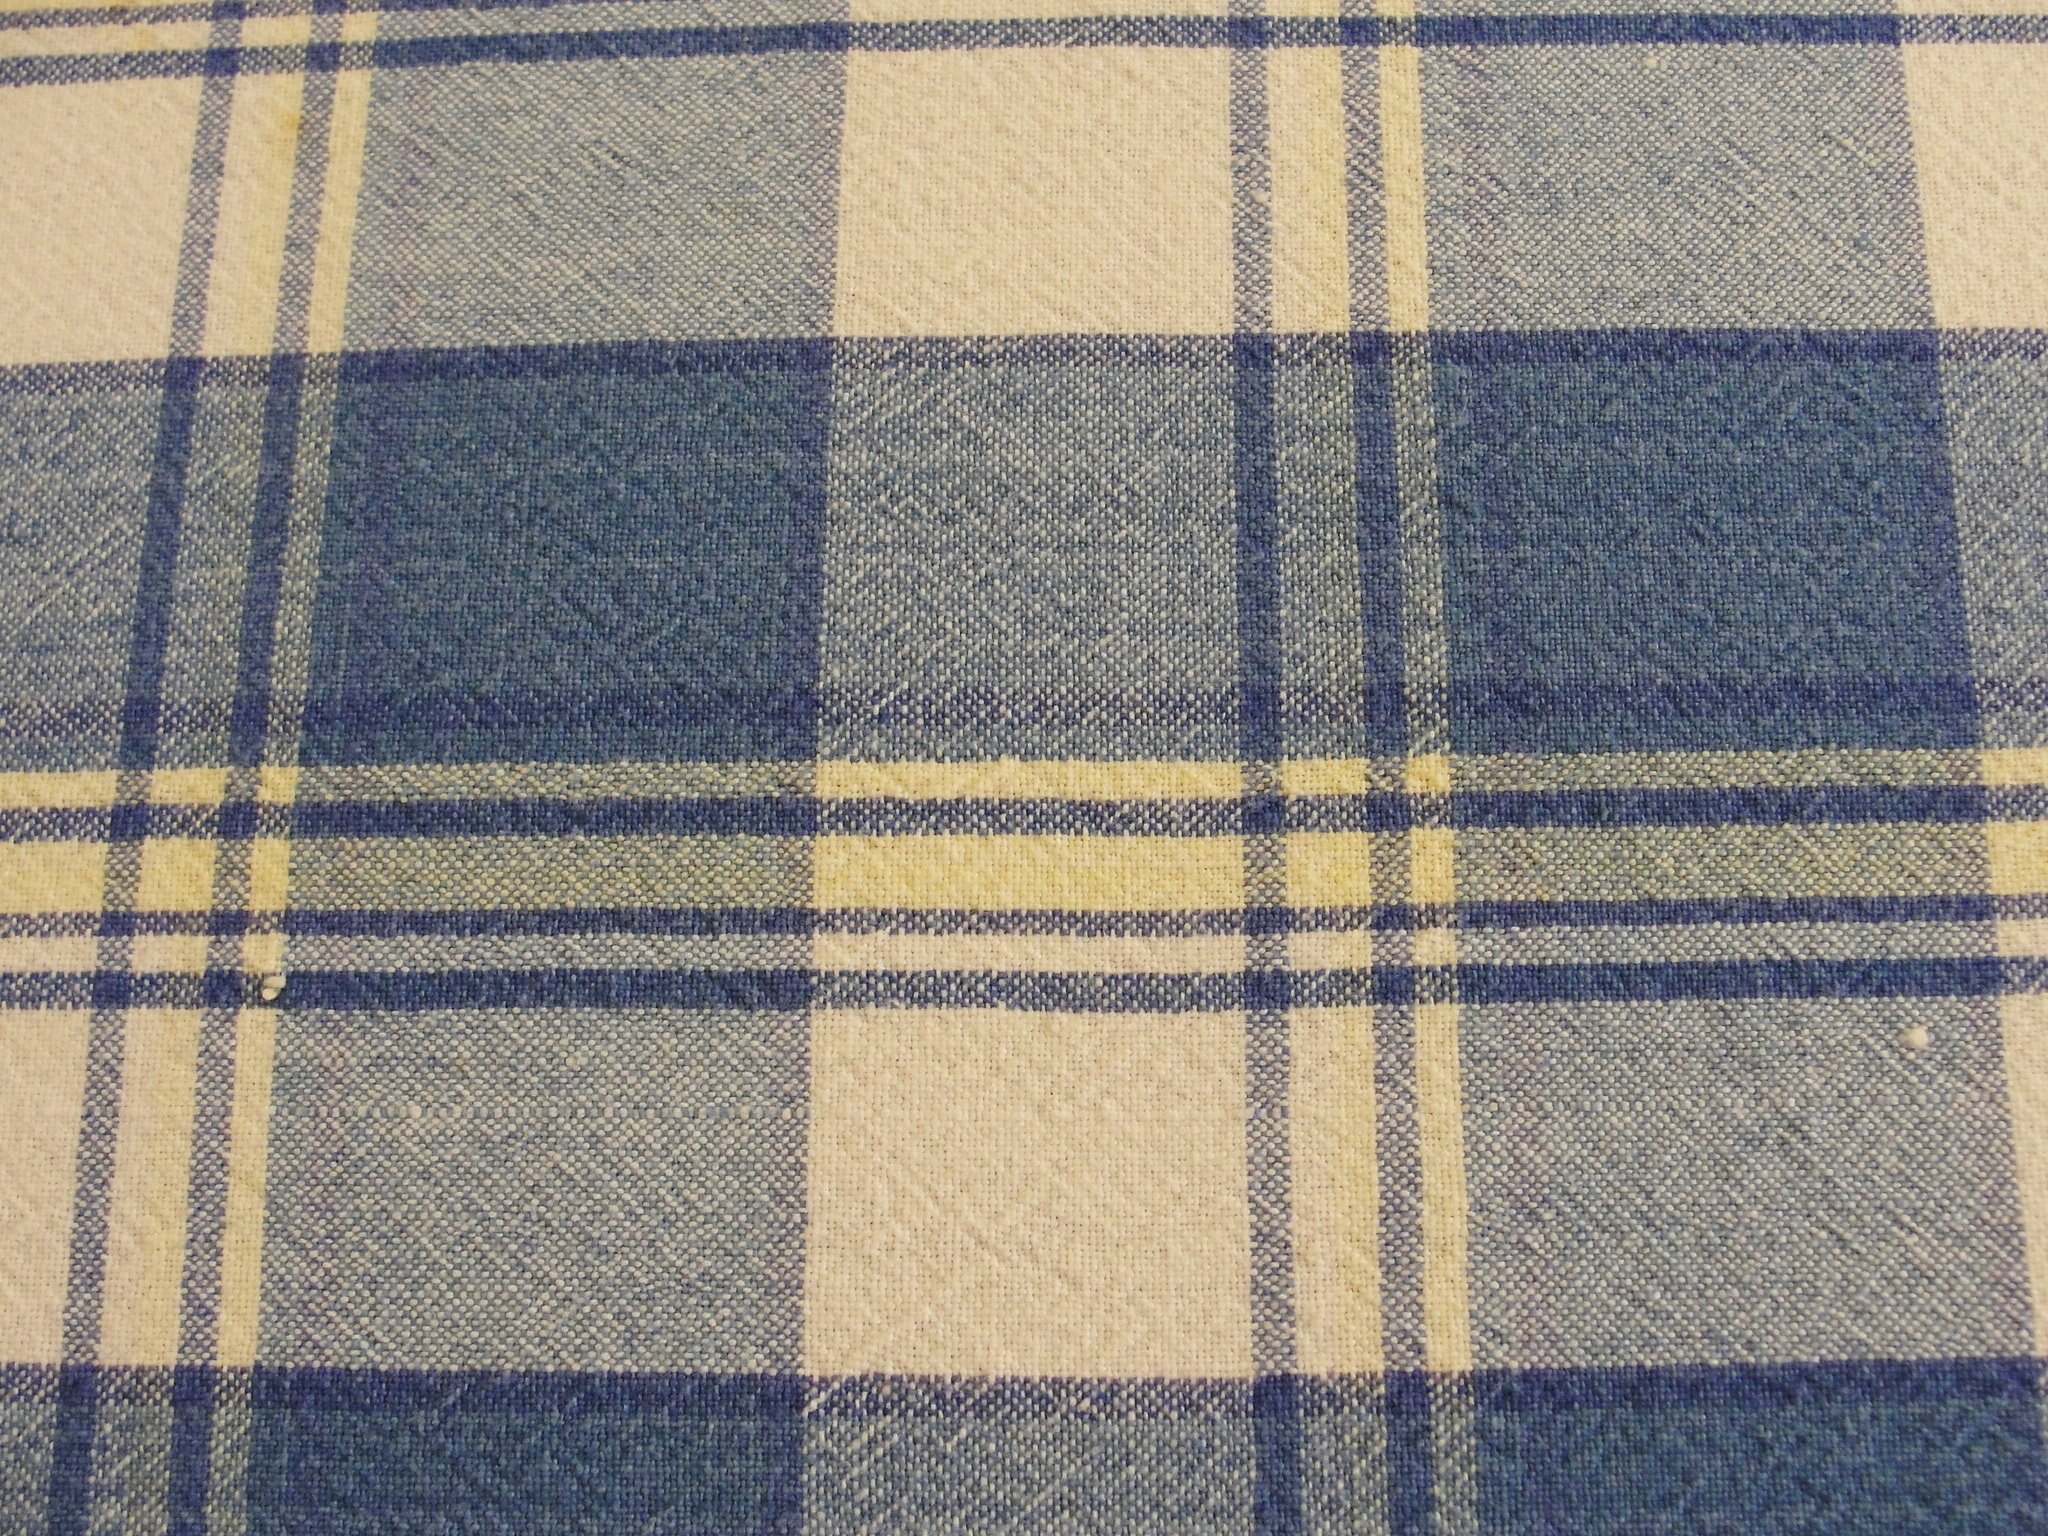 Vintage Cotton Blue And Yellow Plaid Tablecloth 76 X 54